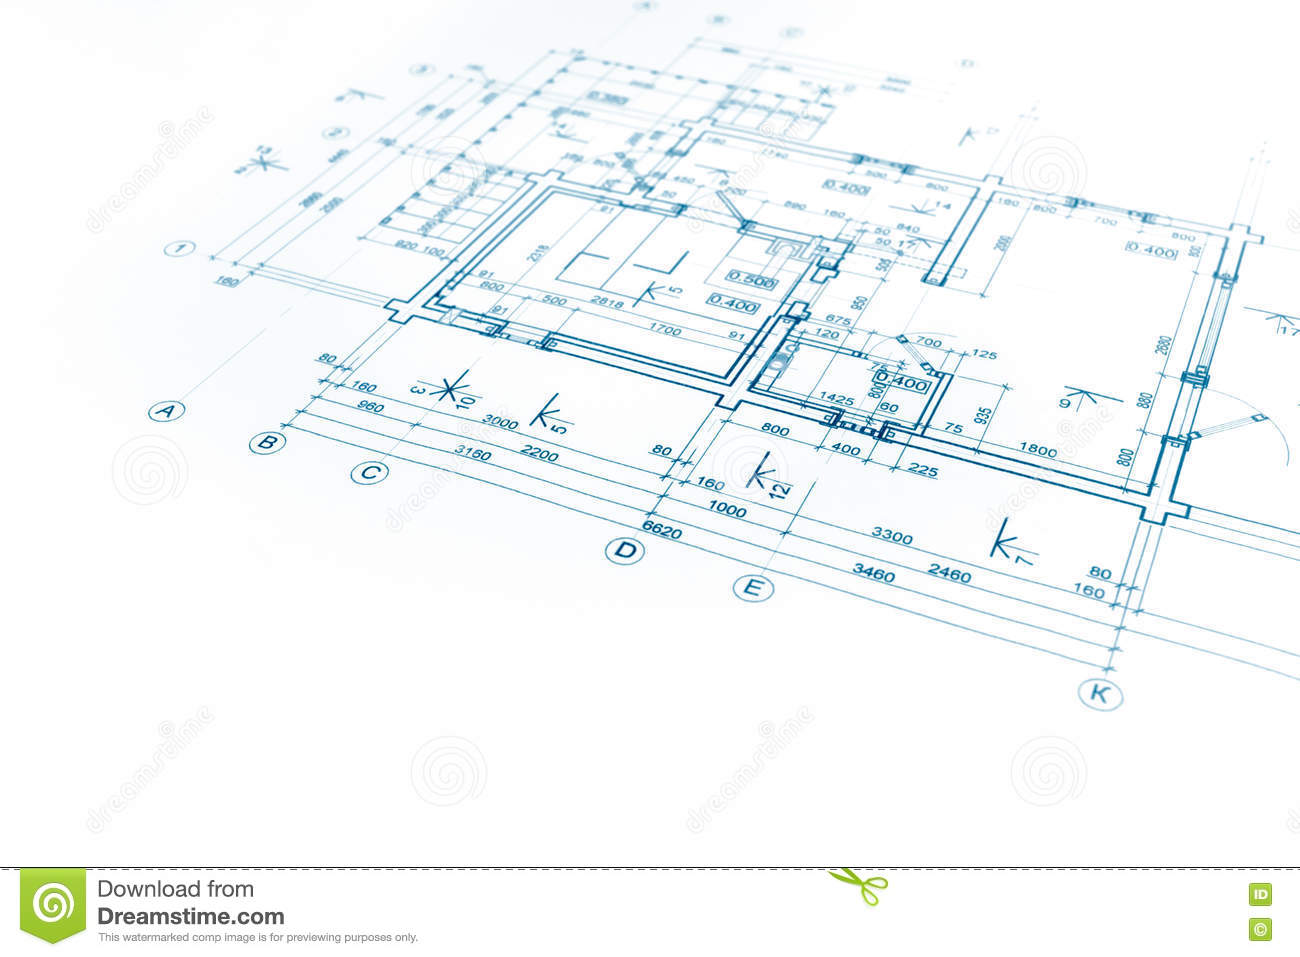 Construction blueprints images blueprint construction thedeco architectural project floor plan blueprint construction blueprint construction malvernweather Images